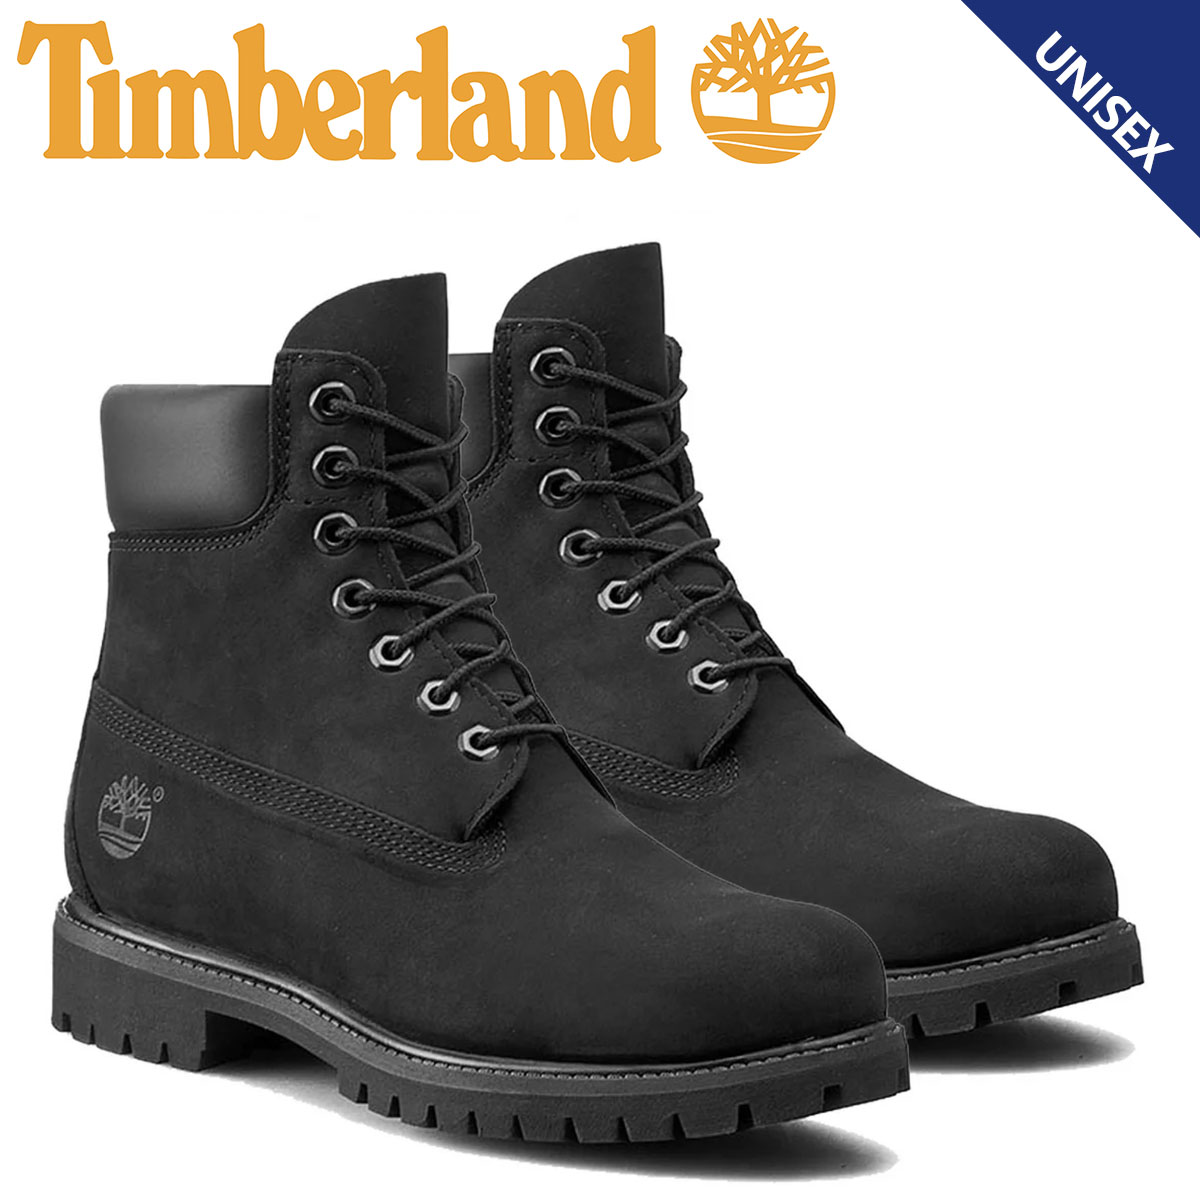 Bottes Timberland Taille De 9w dqcNLtAl